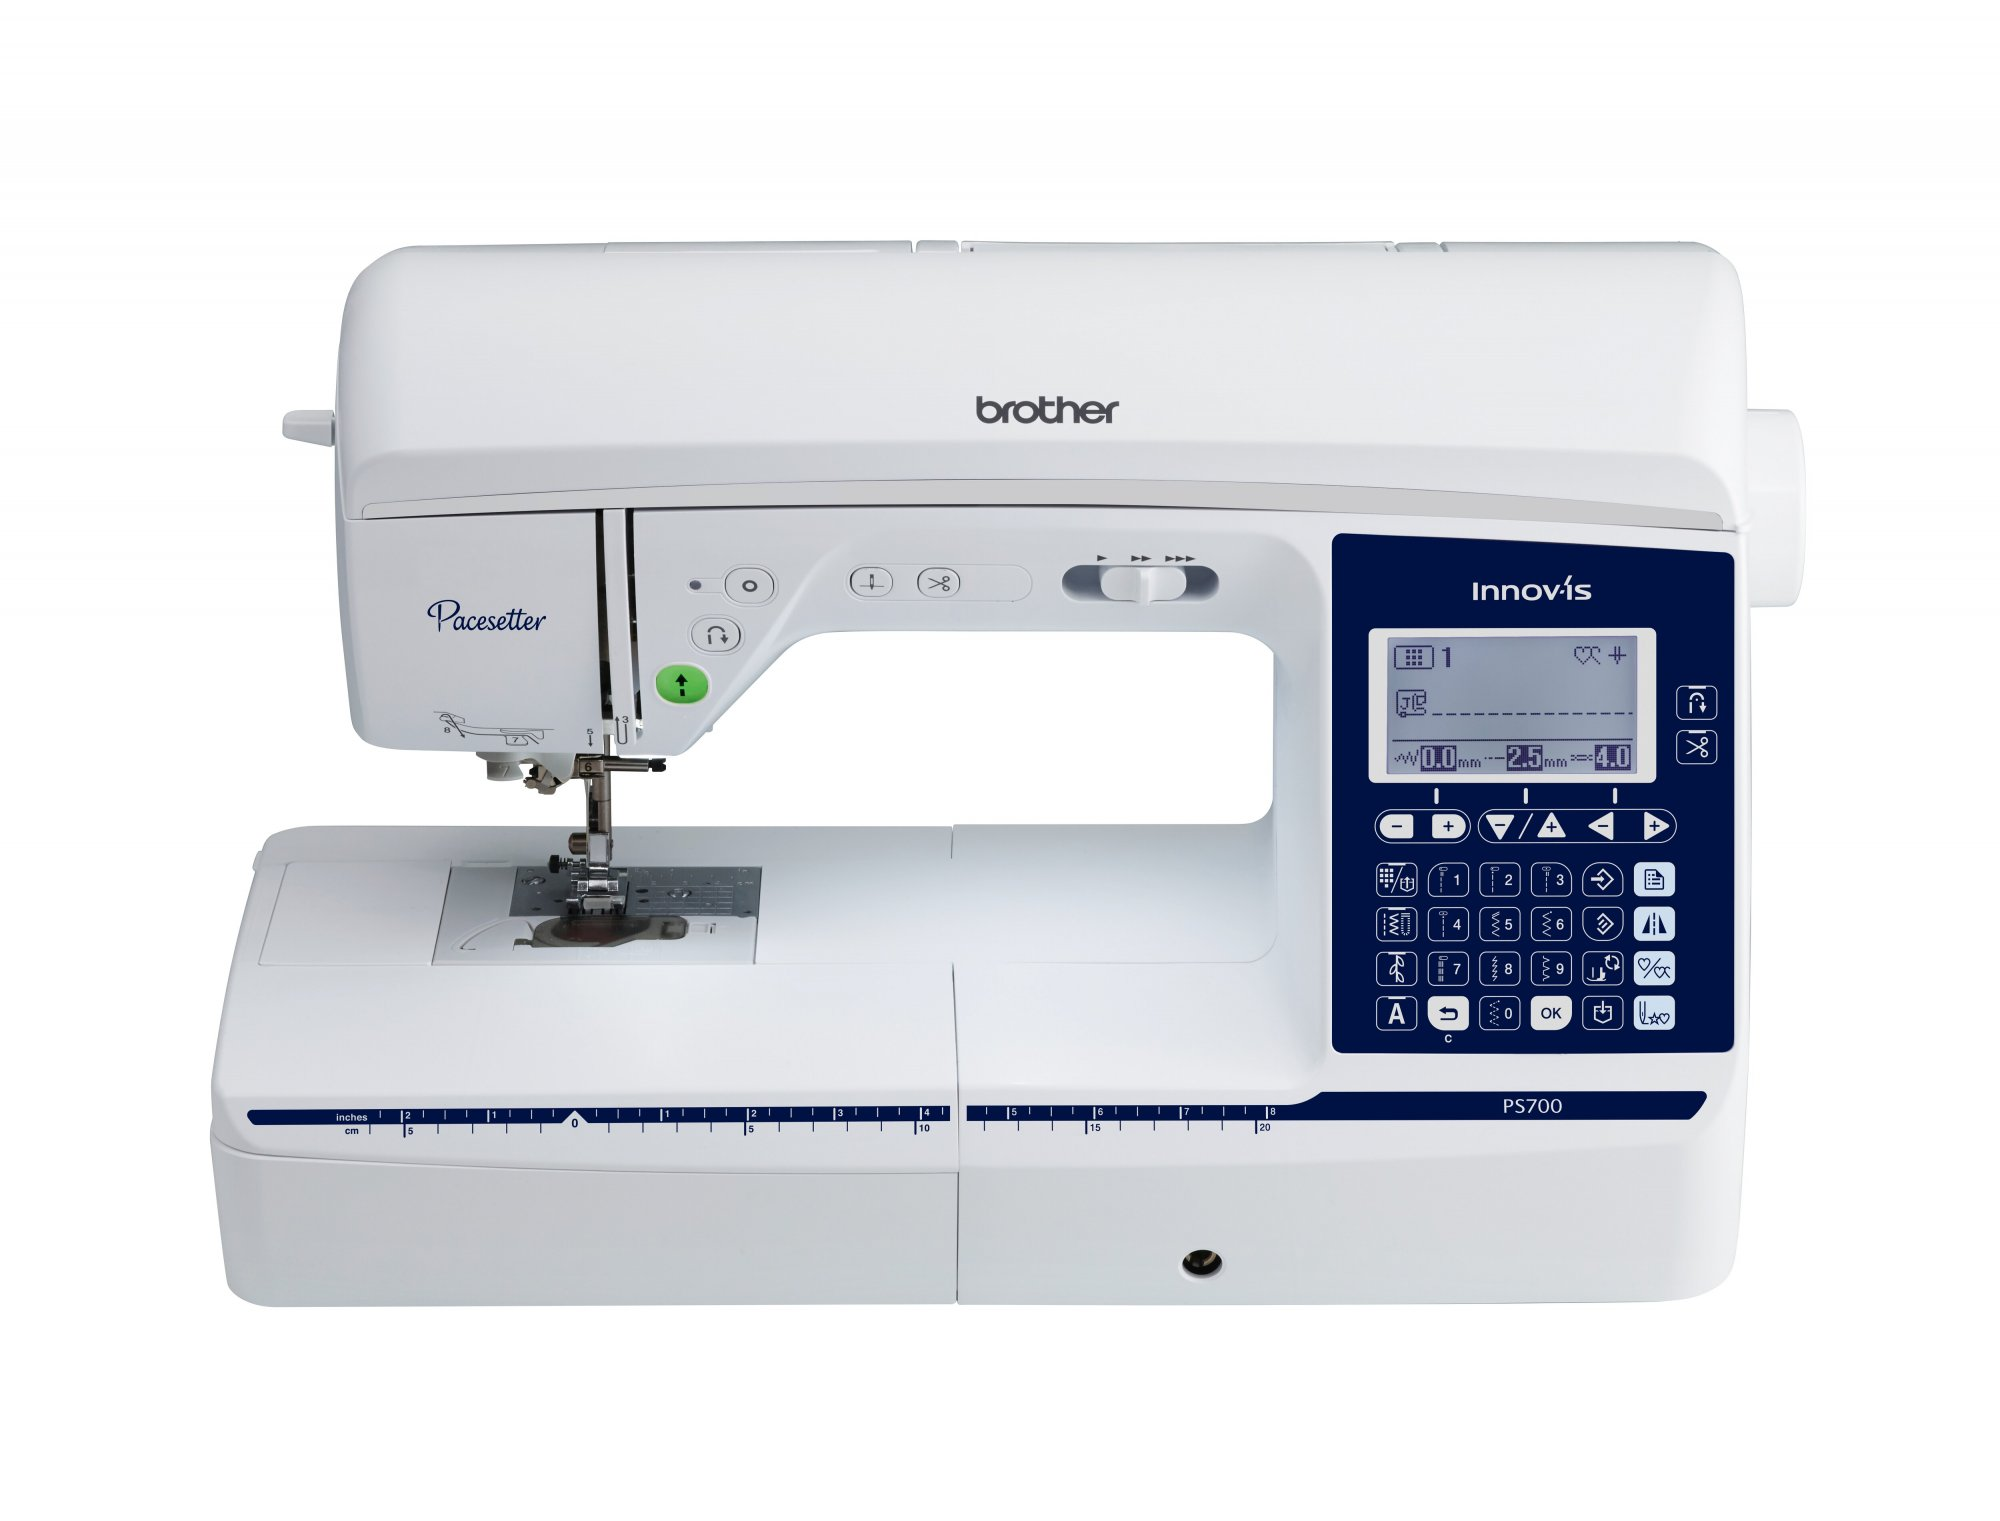 Brother Pacesetter PS700 Sewing Machine